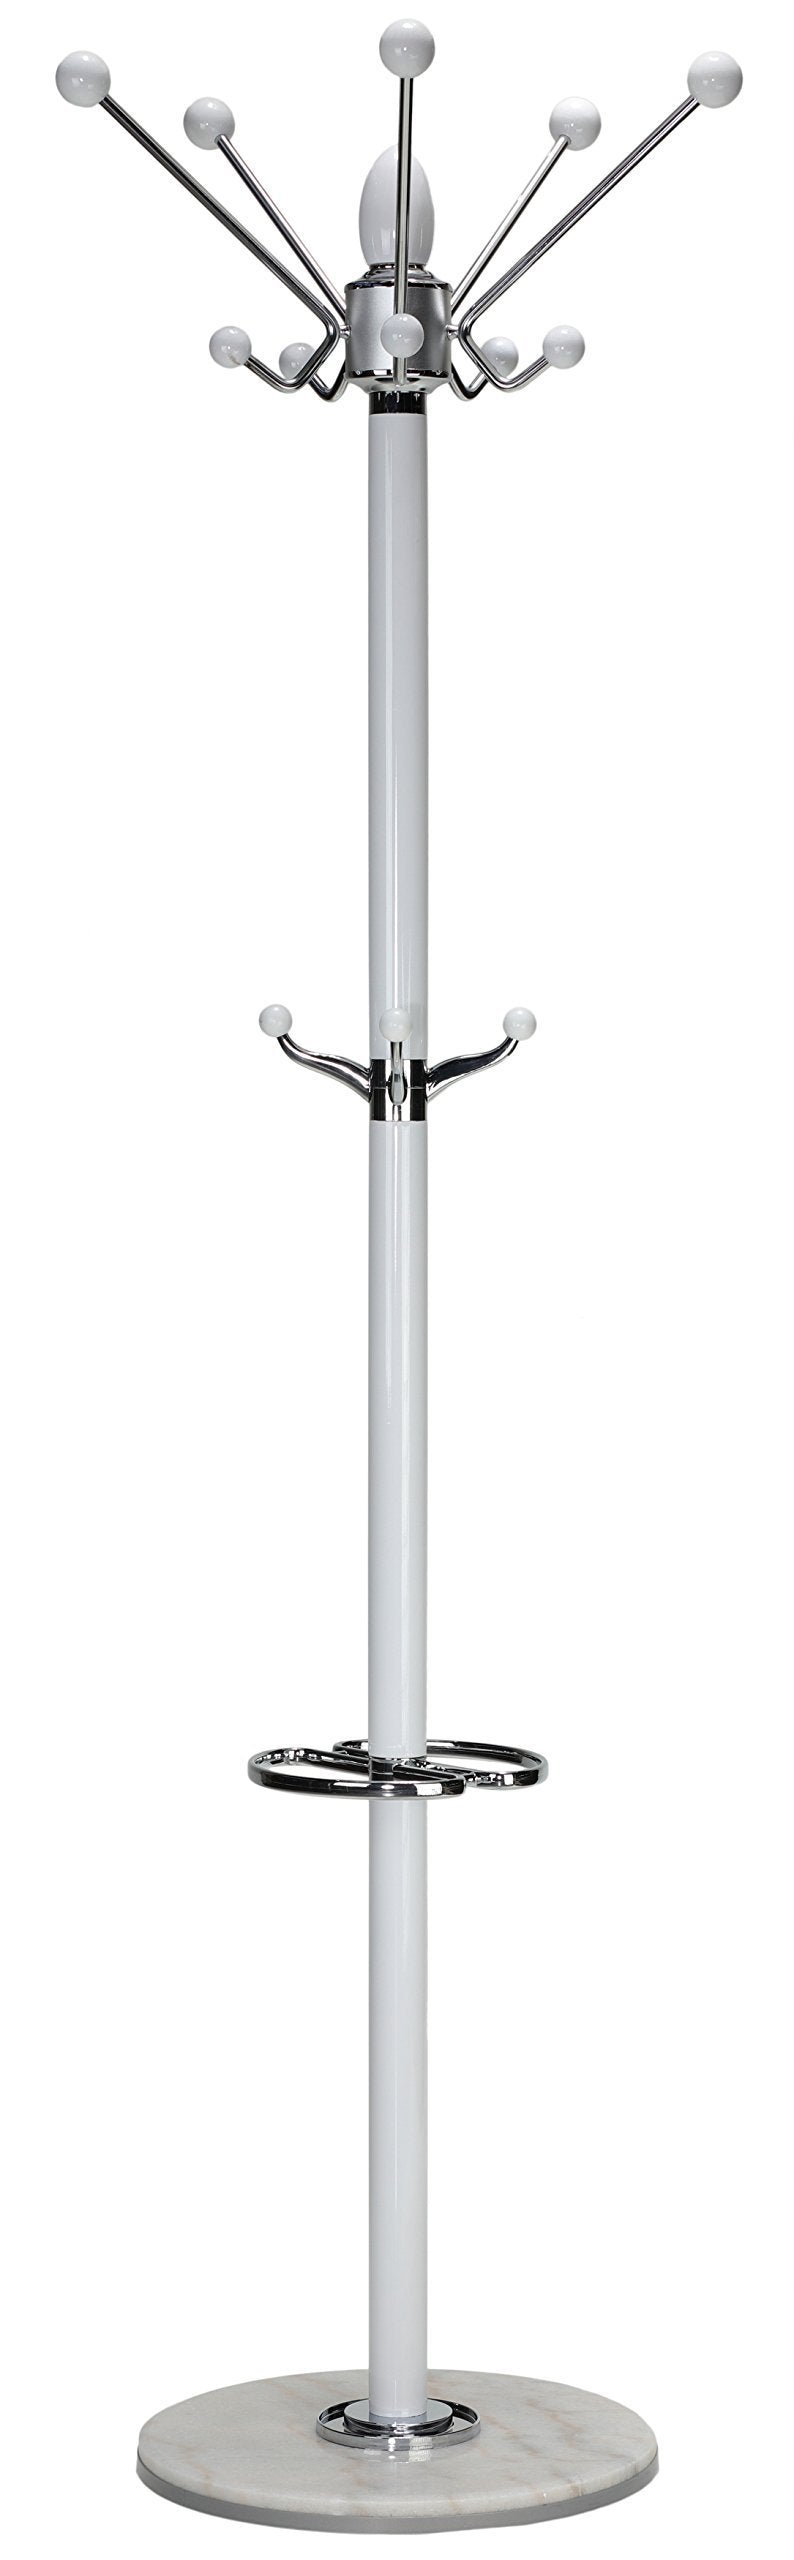 Purchase cortesi home lava coat rack in white lacquer wood and chrome accents white marble